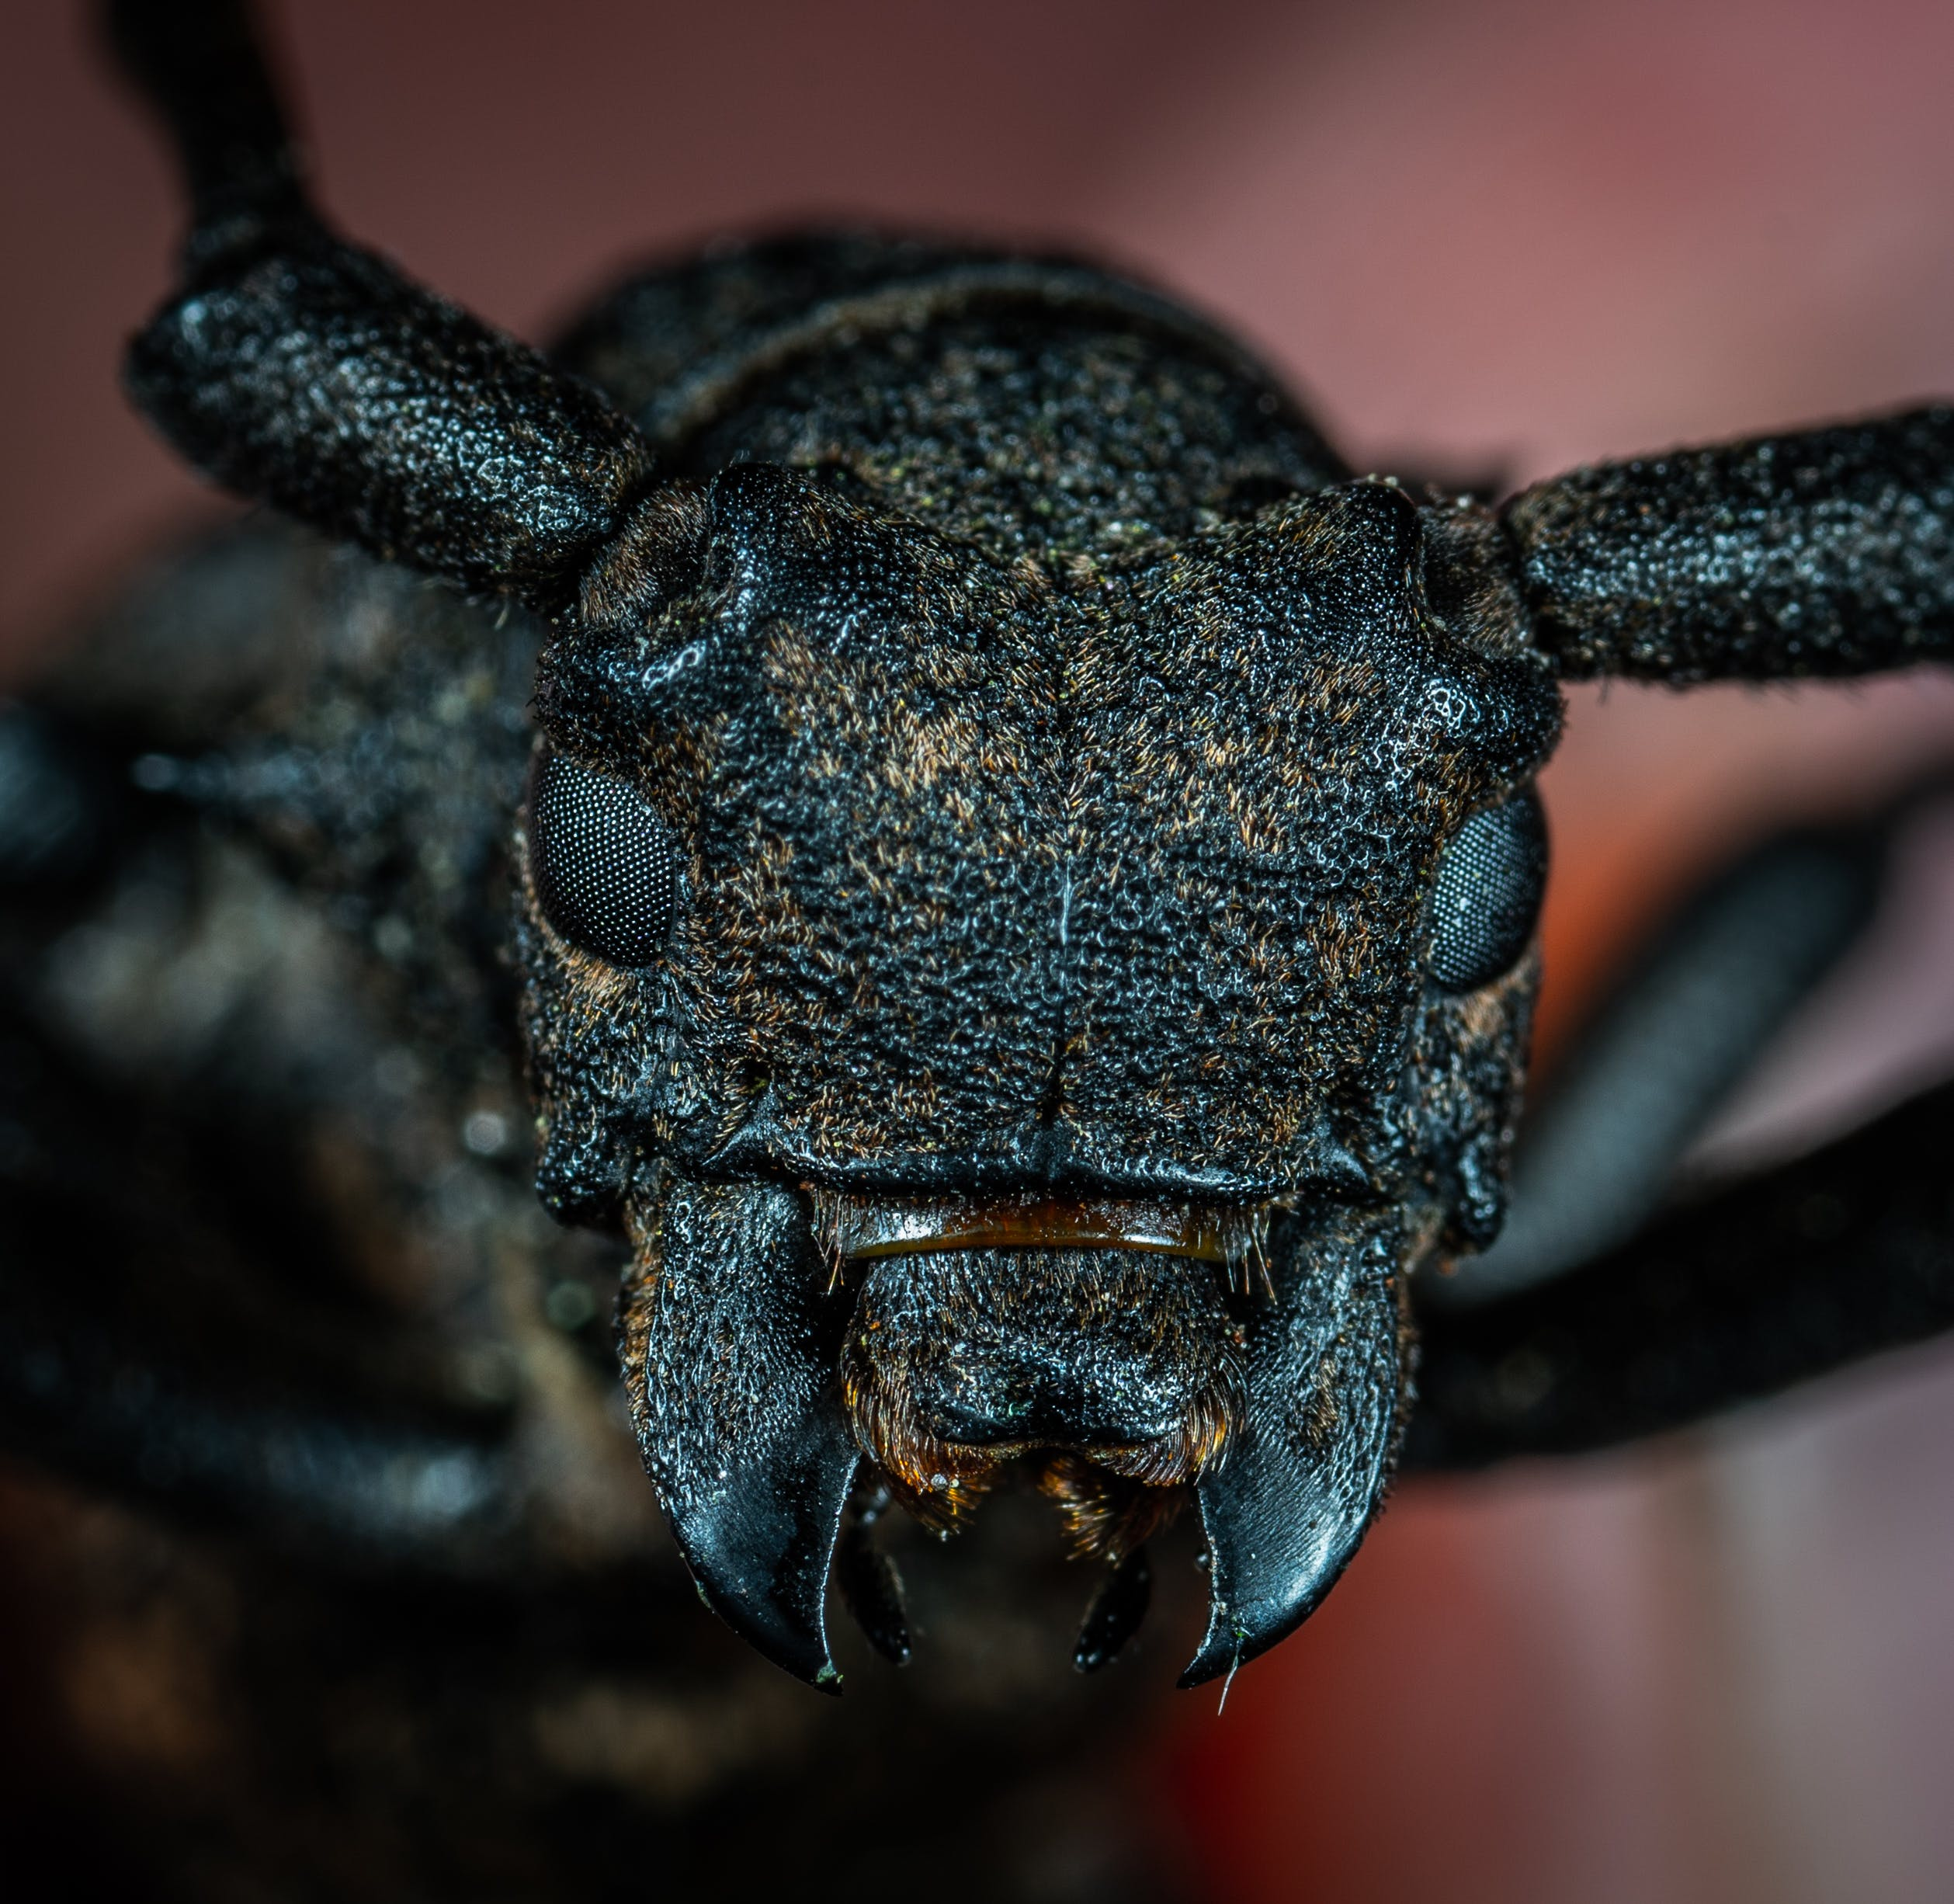 Black Beetle in Macro Photography